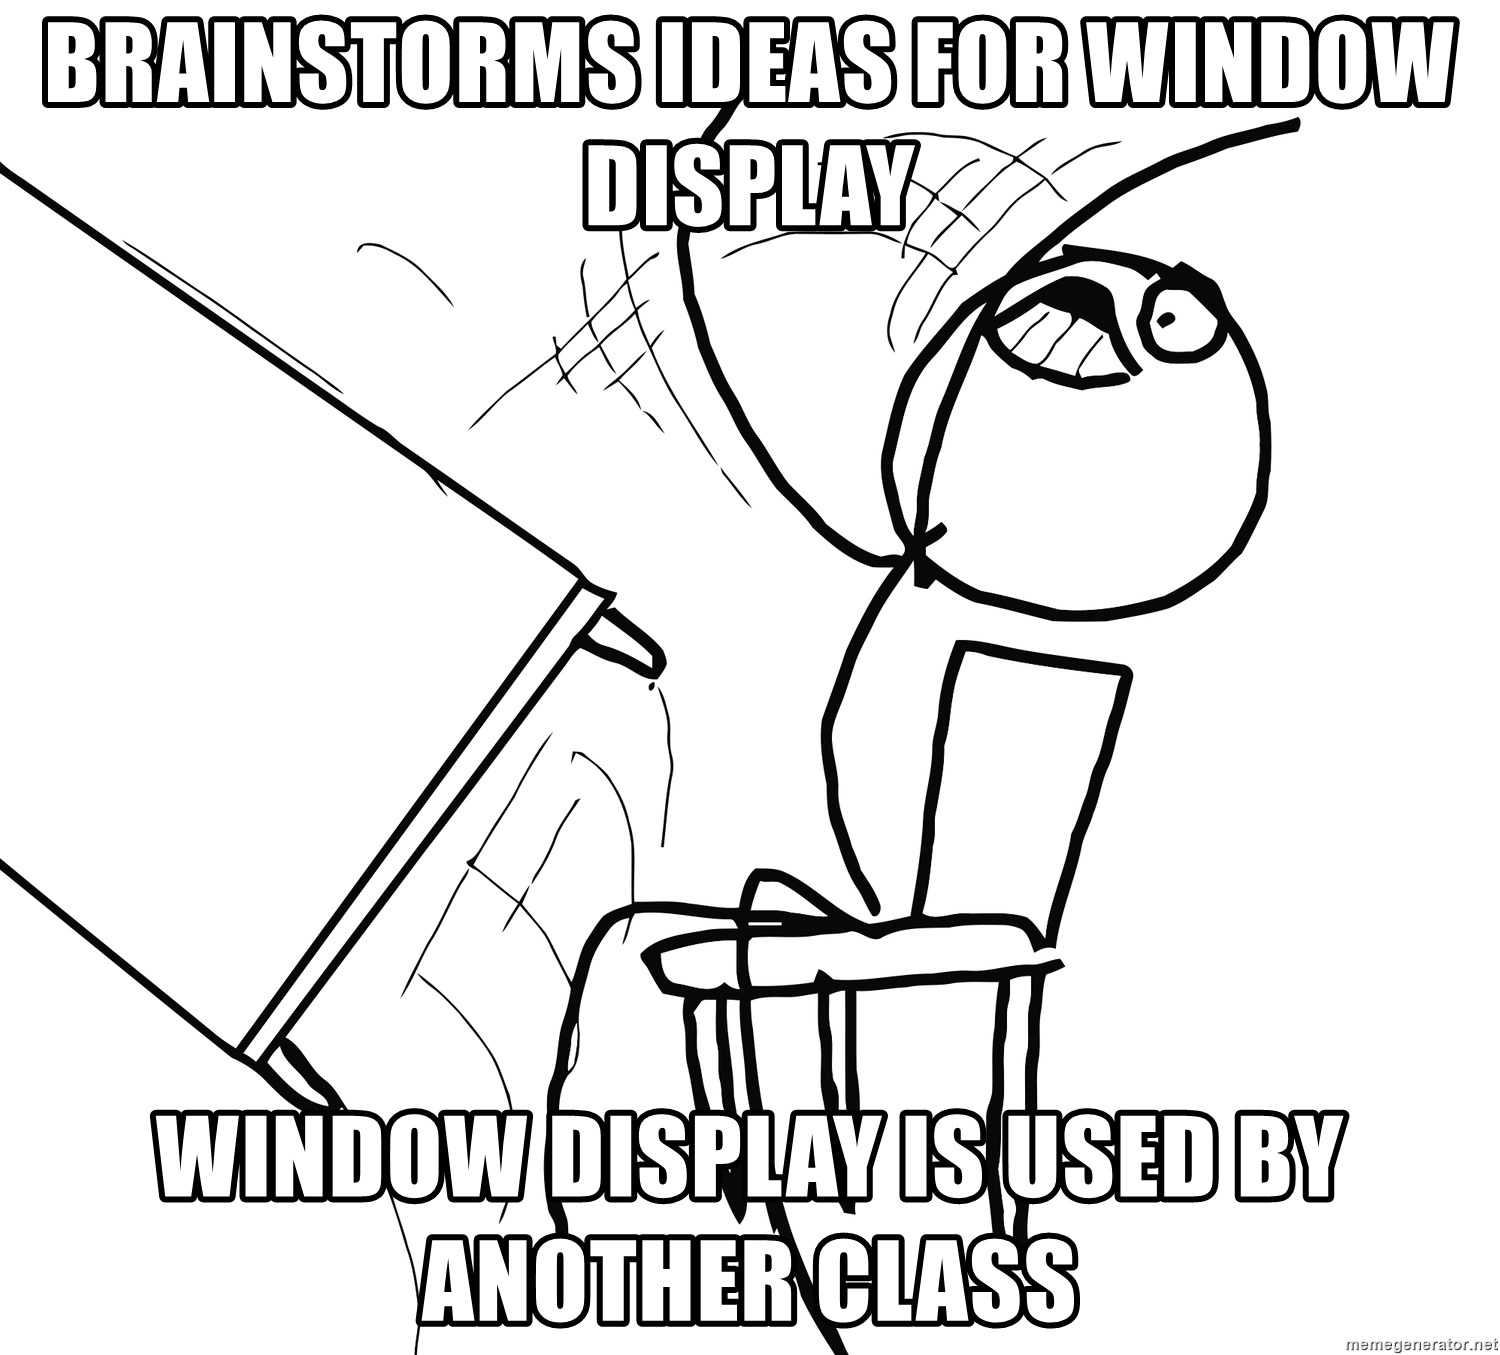 Desk Flip Rage Guy - Brainstorms ideas for window display window display is used by another class